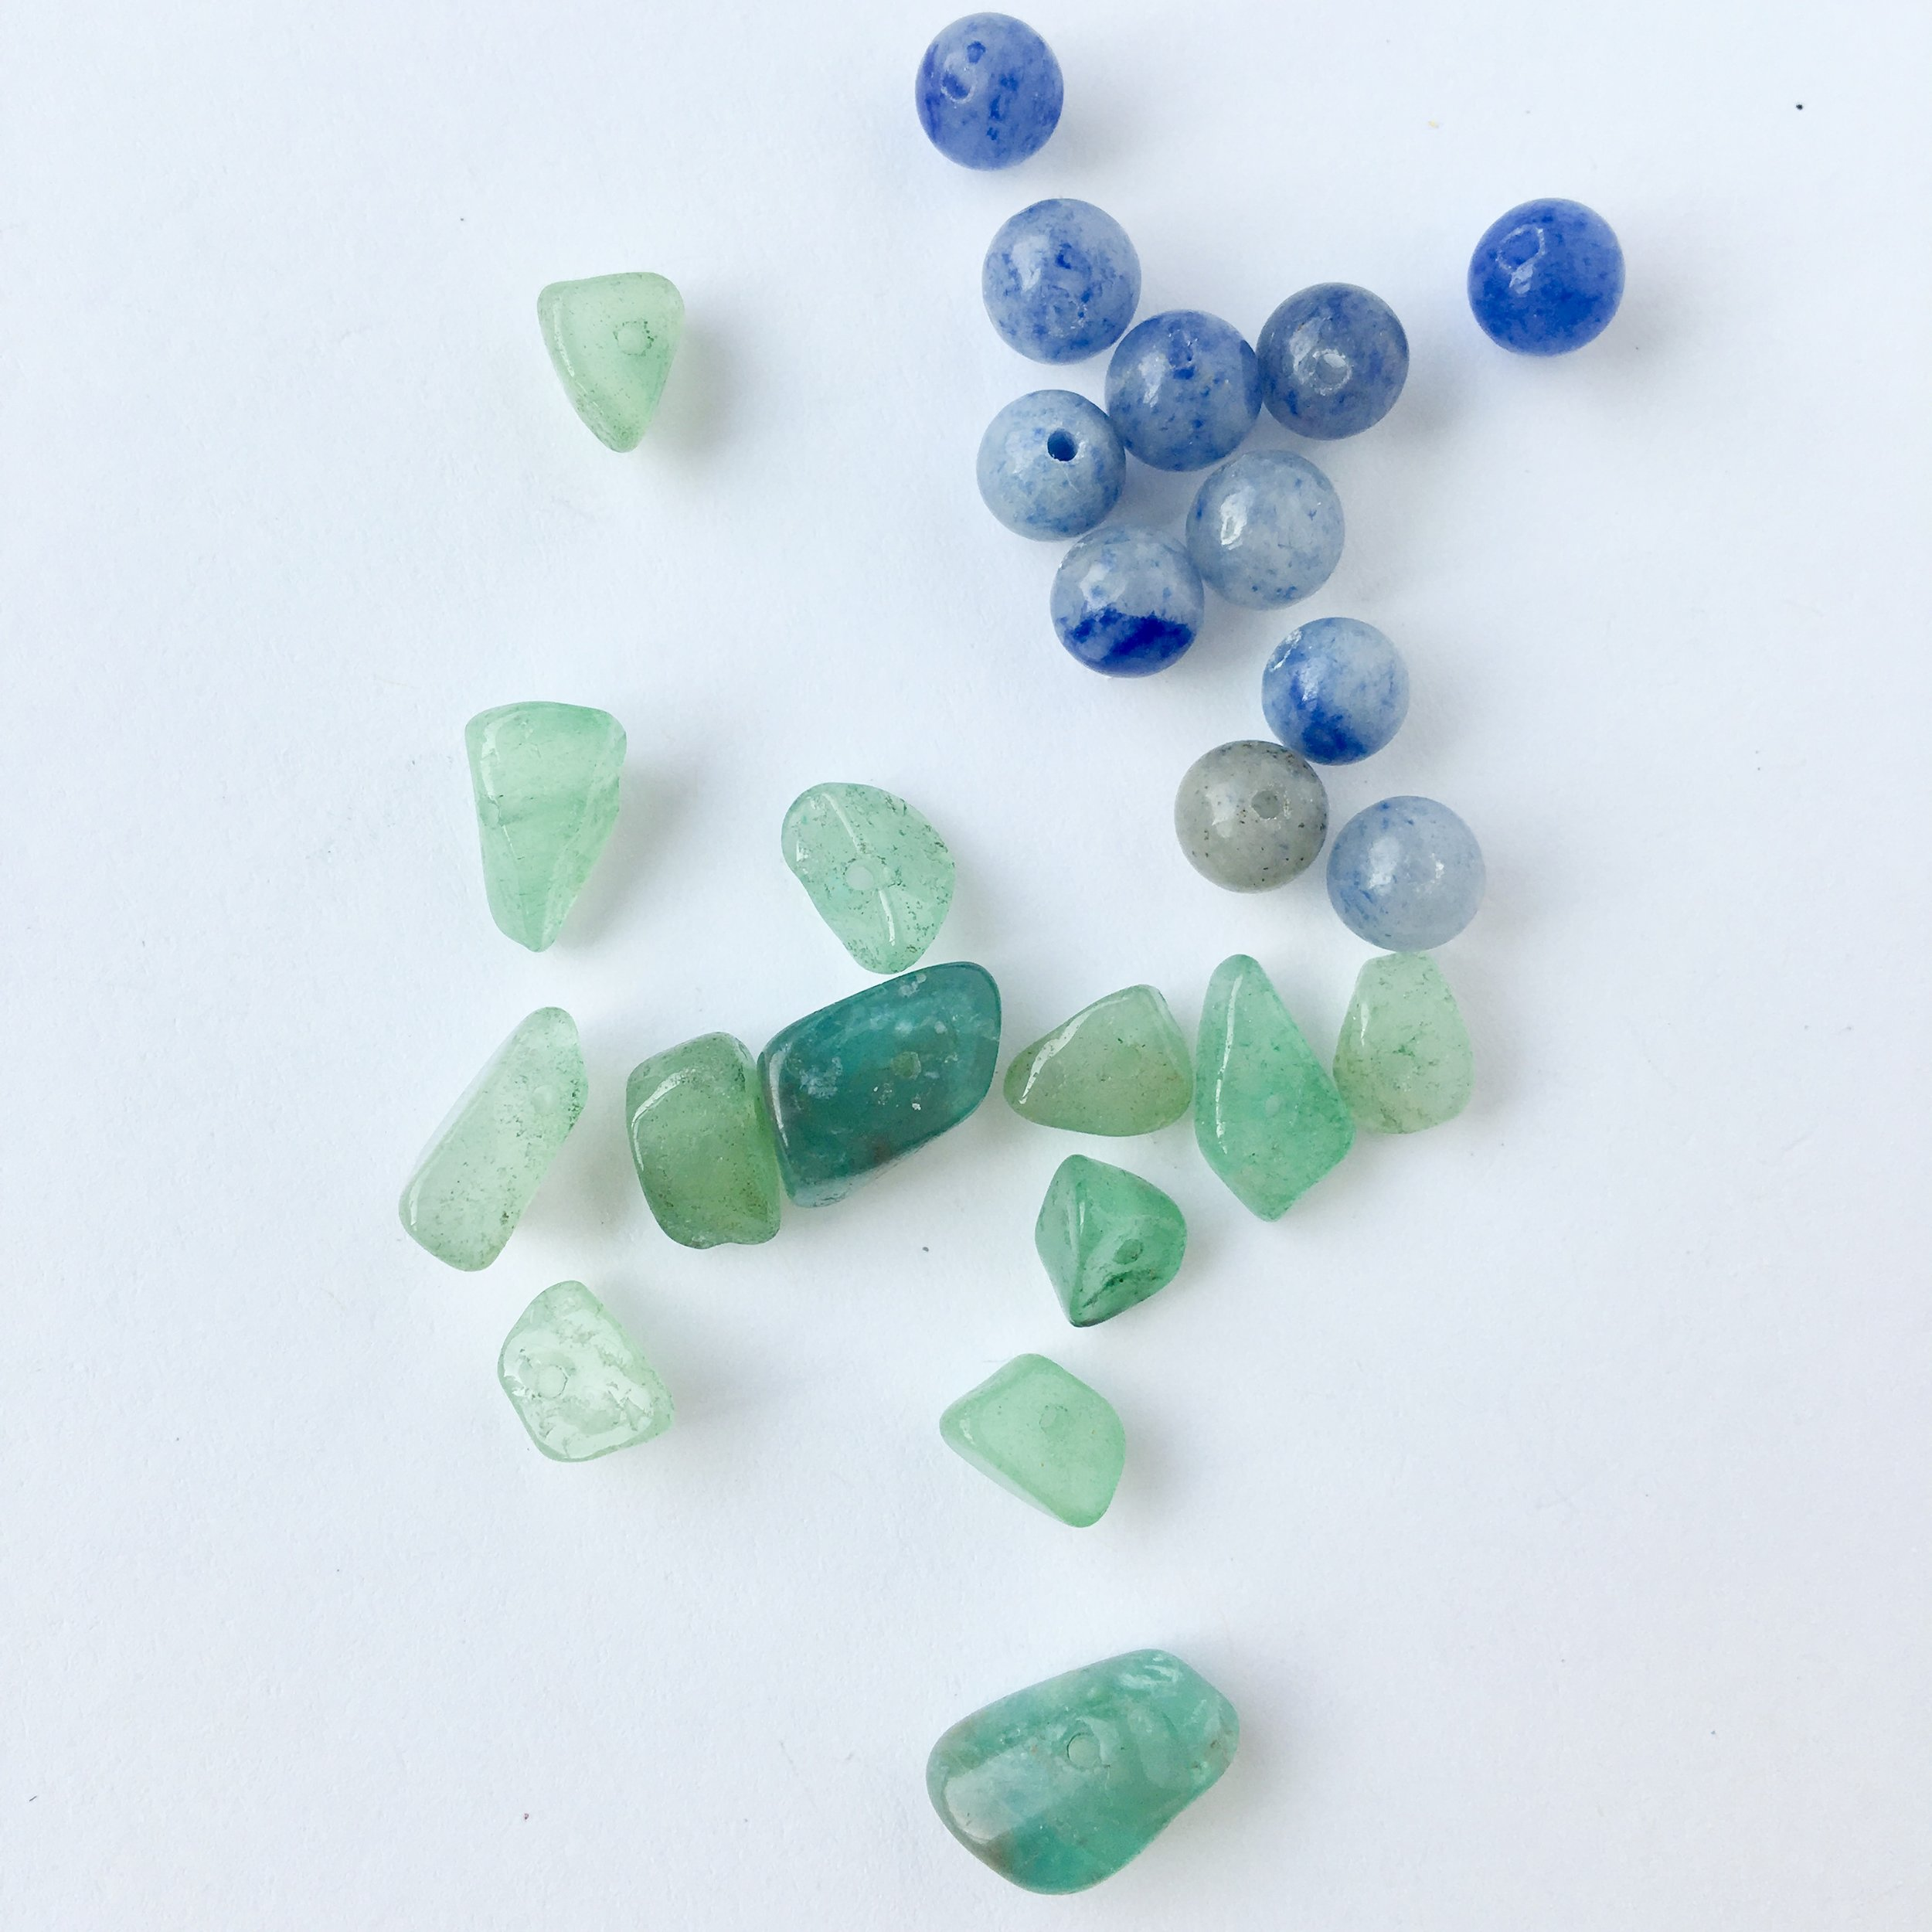 Adventurine: Aids in maintaining optimism, luck and positivity, strength during stress.